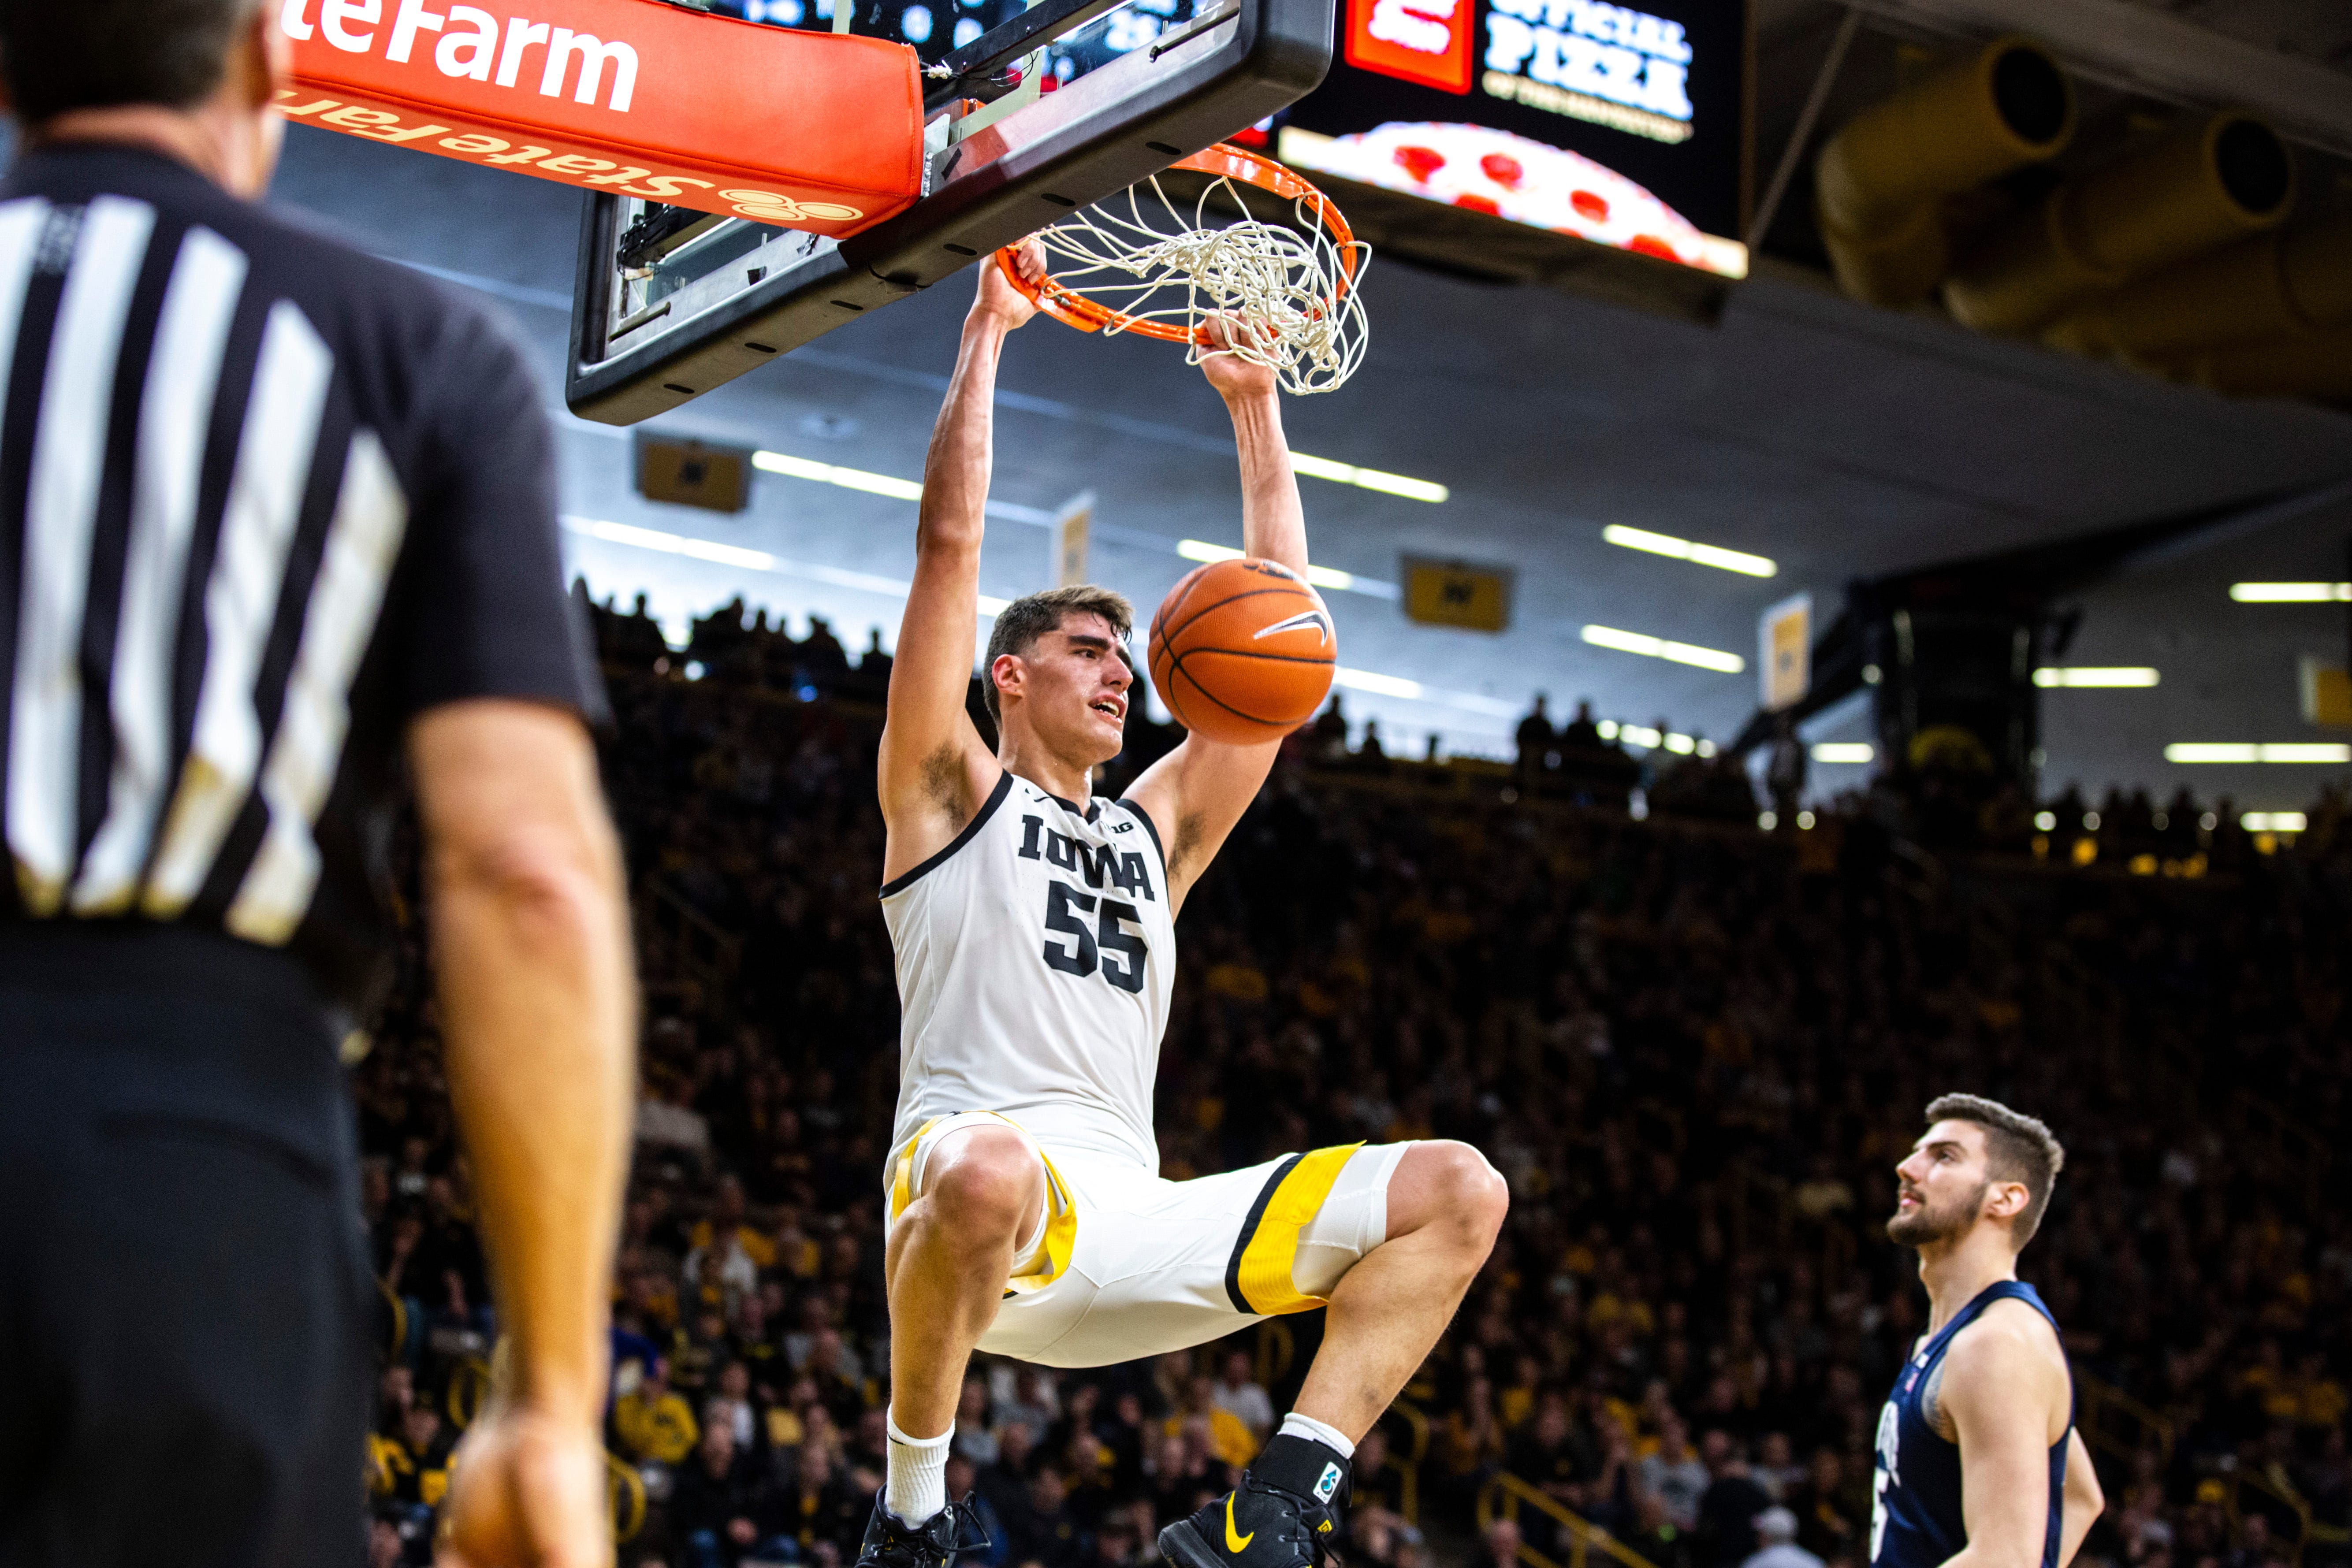 Iowa center Luka Garza (55) dunks during a NCAA Big Ten Conference mens basketball game against Penn State, Saturday, Feb. 29, 2020, at Carver-Hawkeye Arena in Iowa City, Iowa. 200227 Penn St Iowa Mbb 046 Jpg